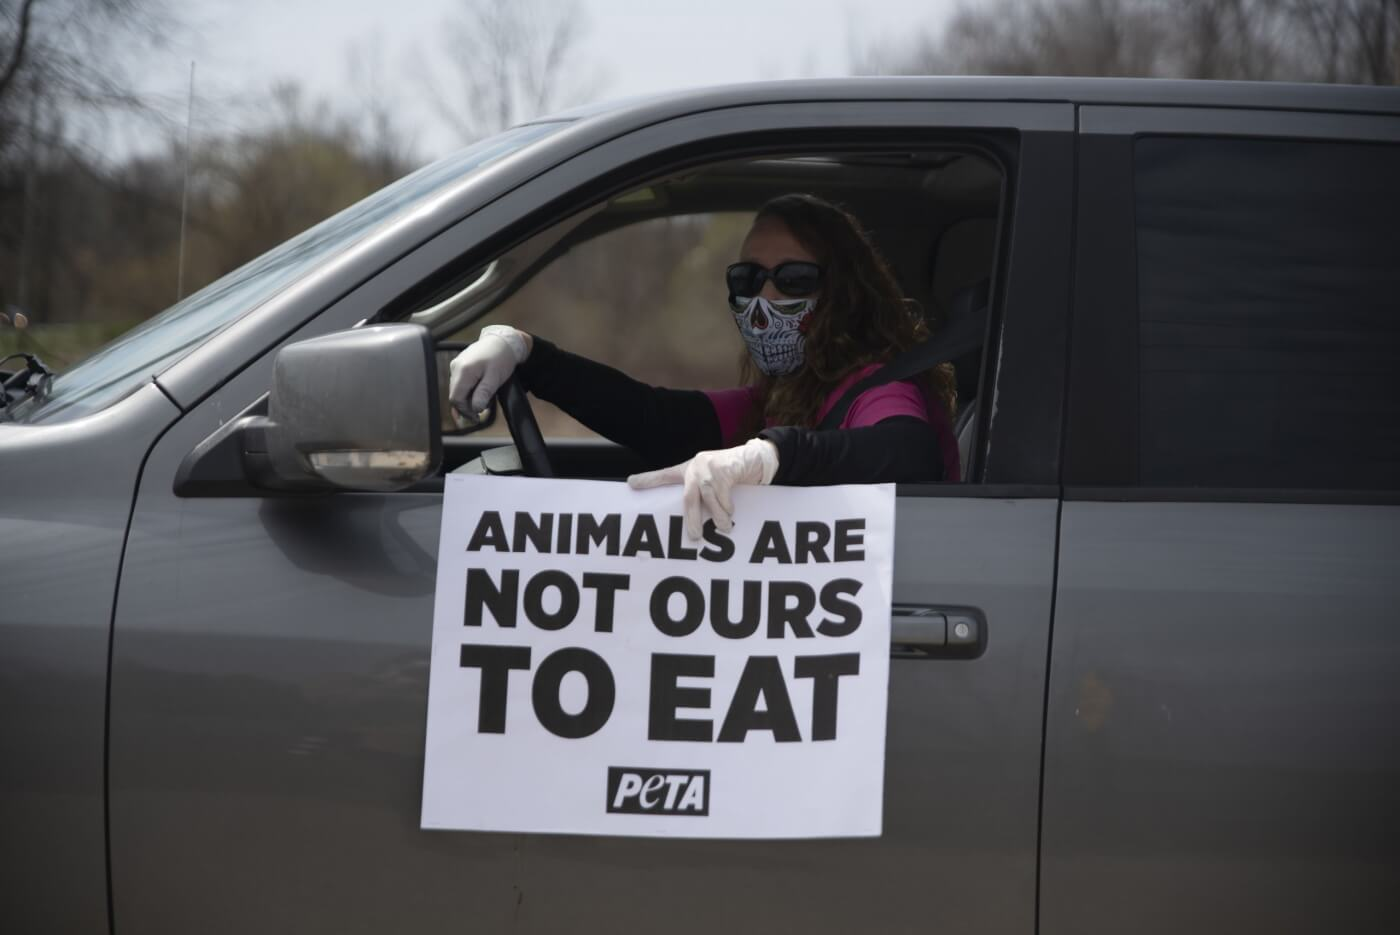 peta's move away from meat ad campaign heats up with nationwide protests